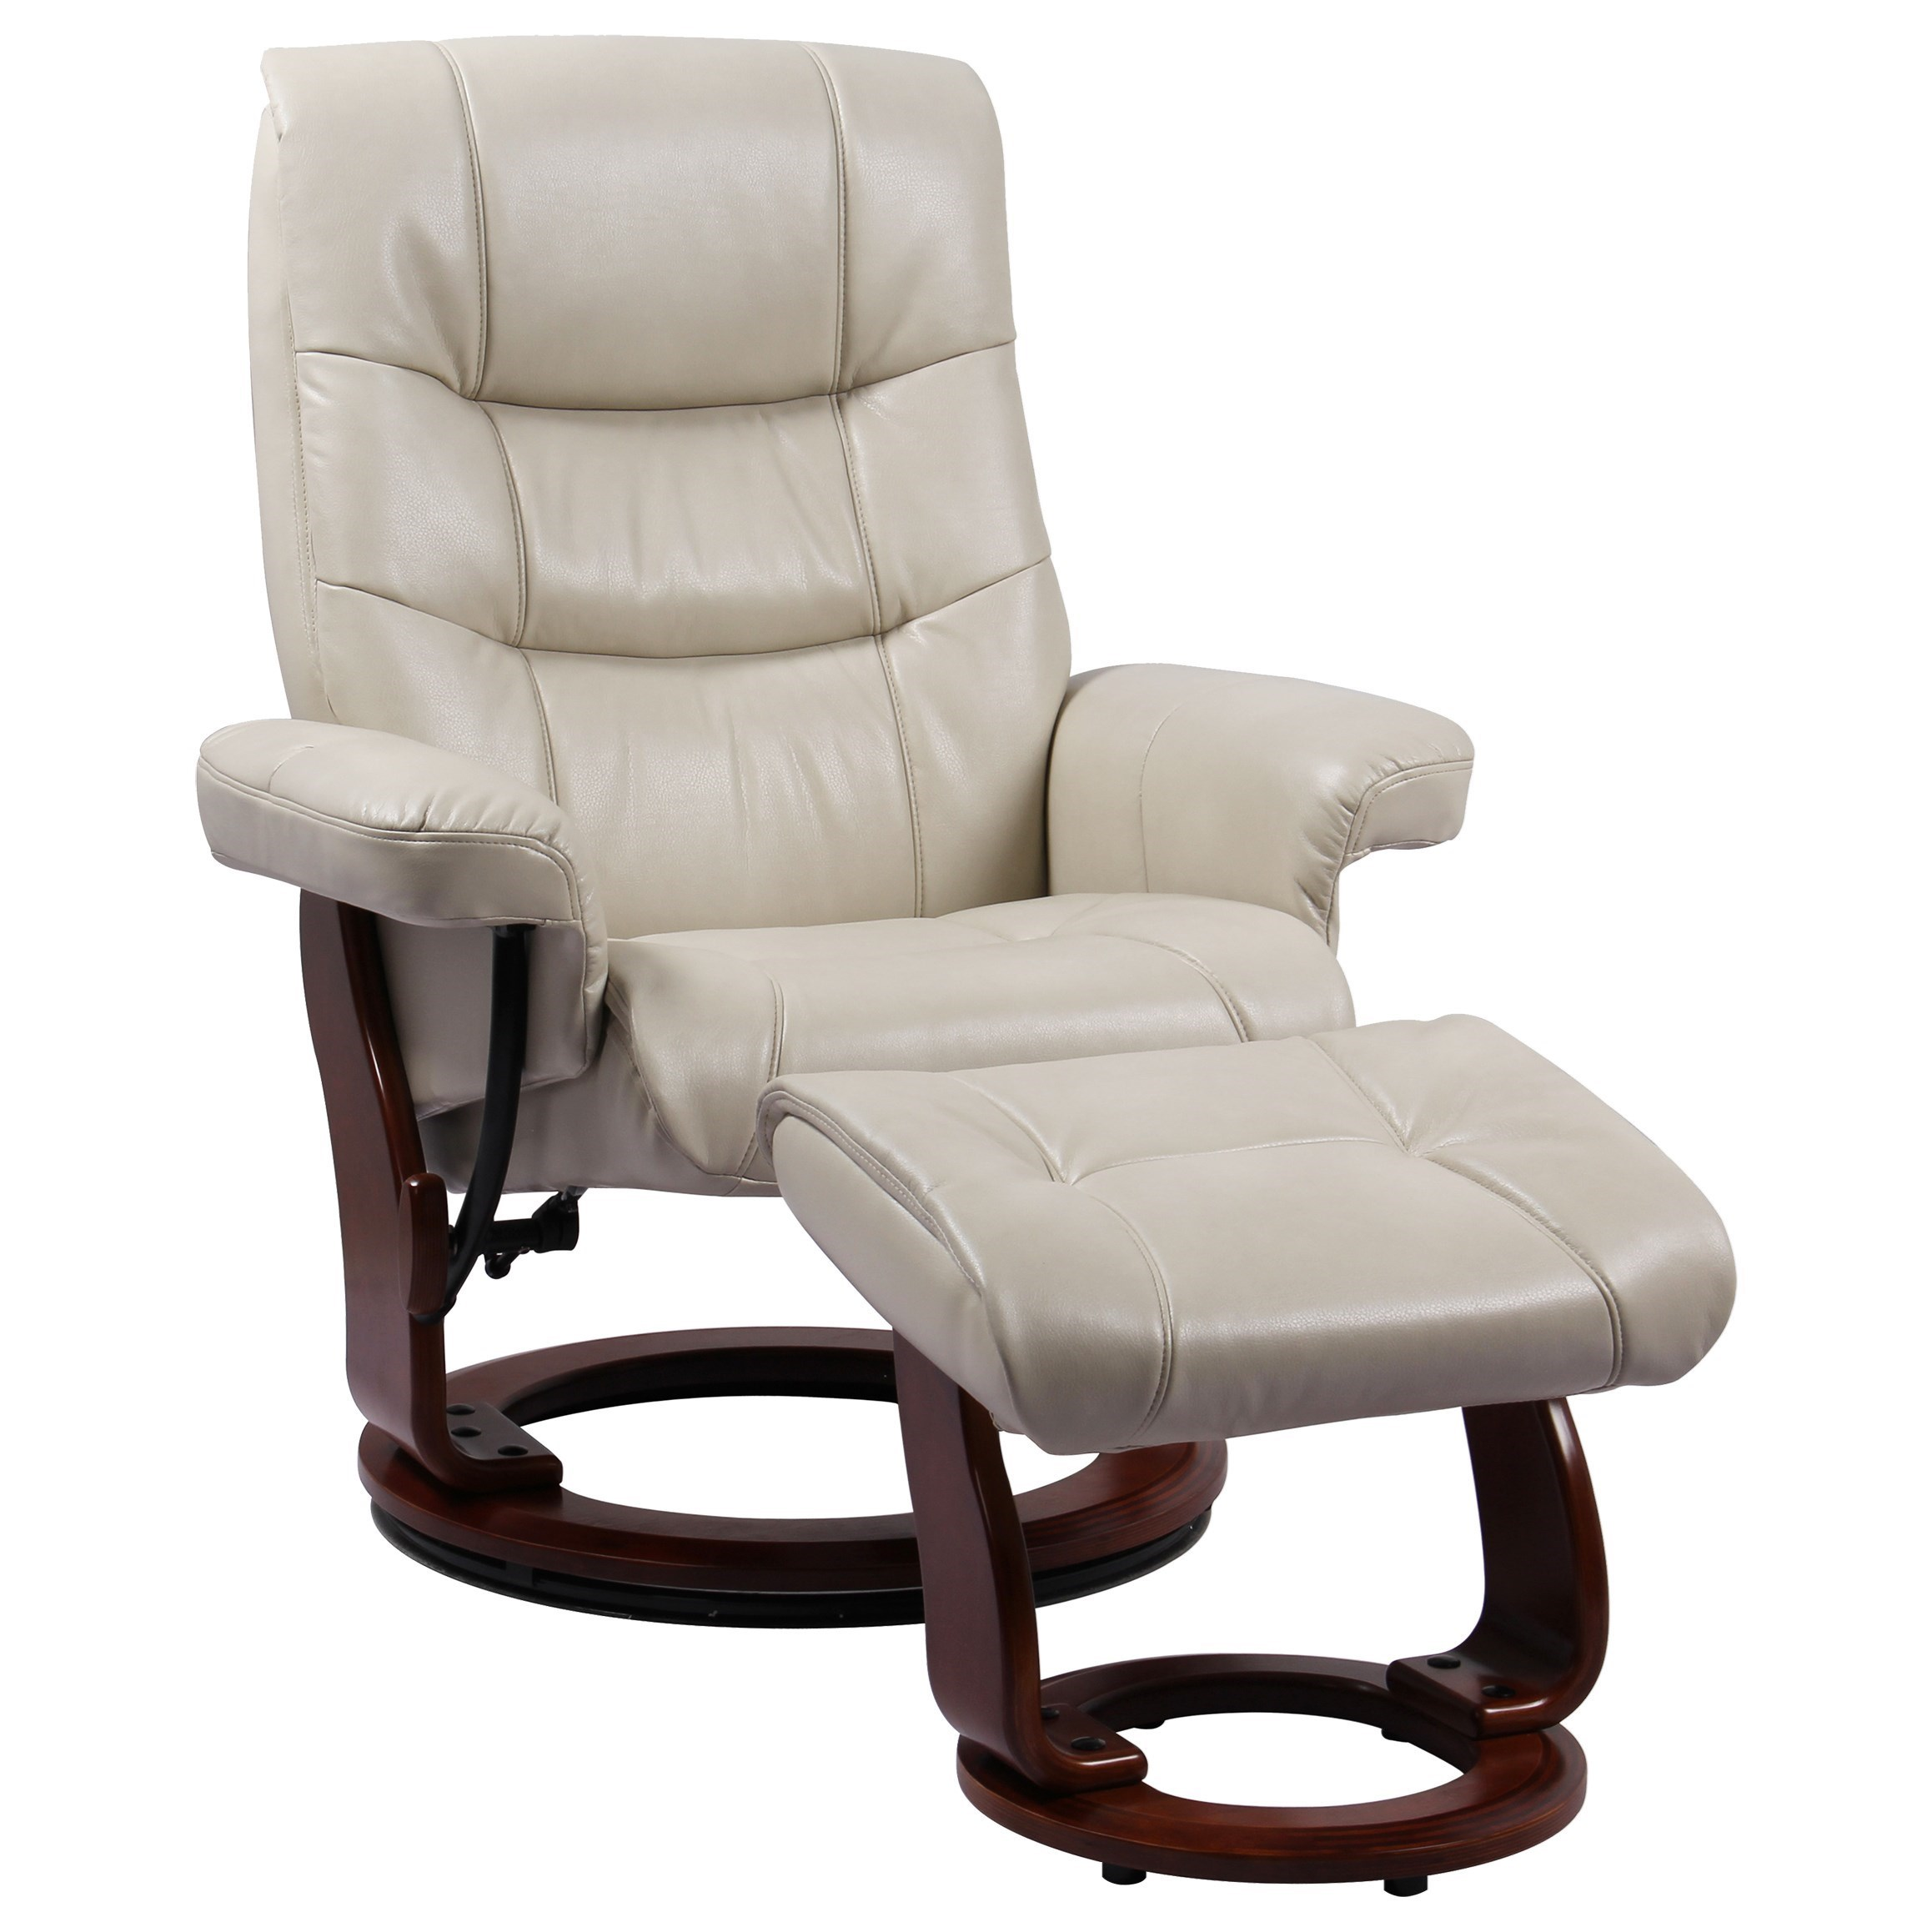 Reclining Chair And Ottoman Rosa Ii Reclining Chair With Ottoman Belfort Furniture